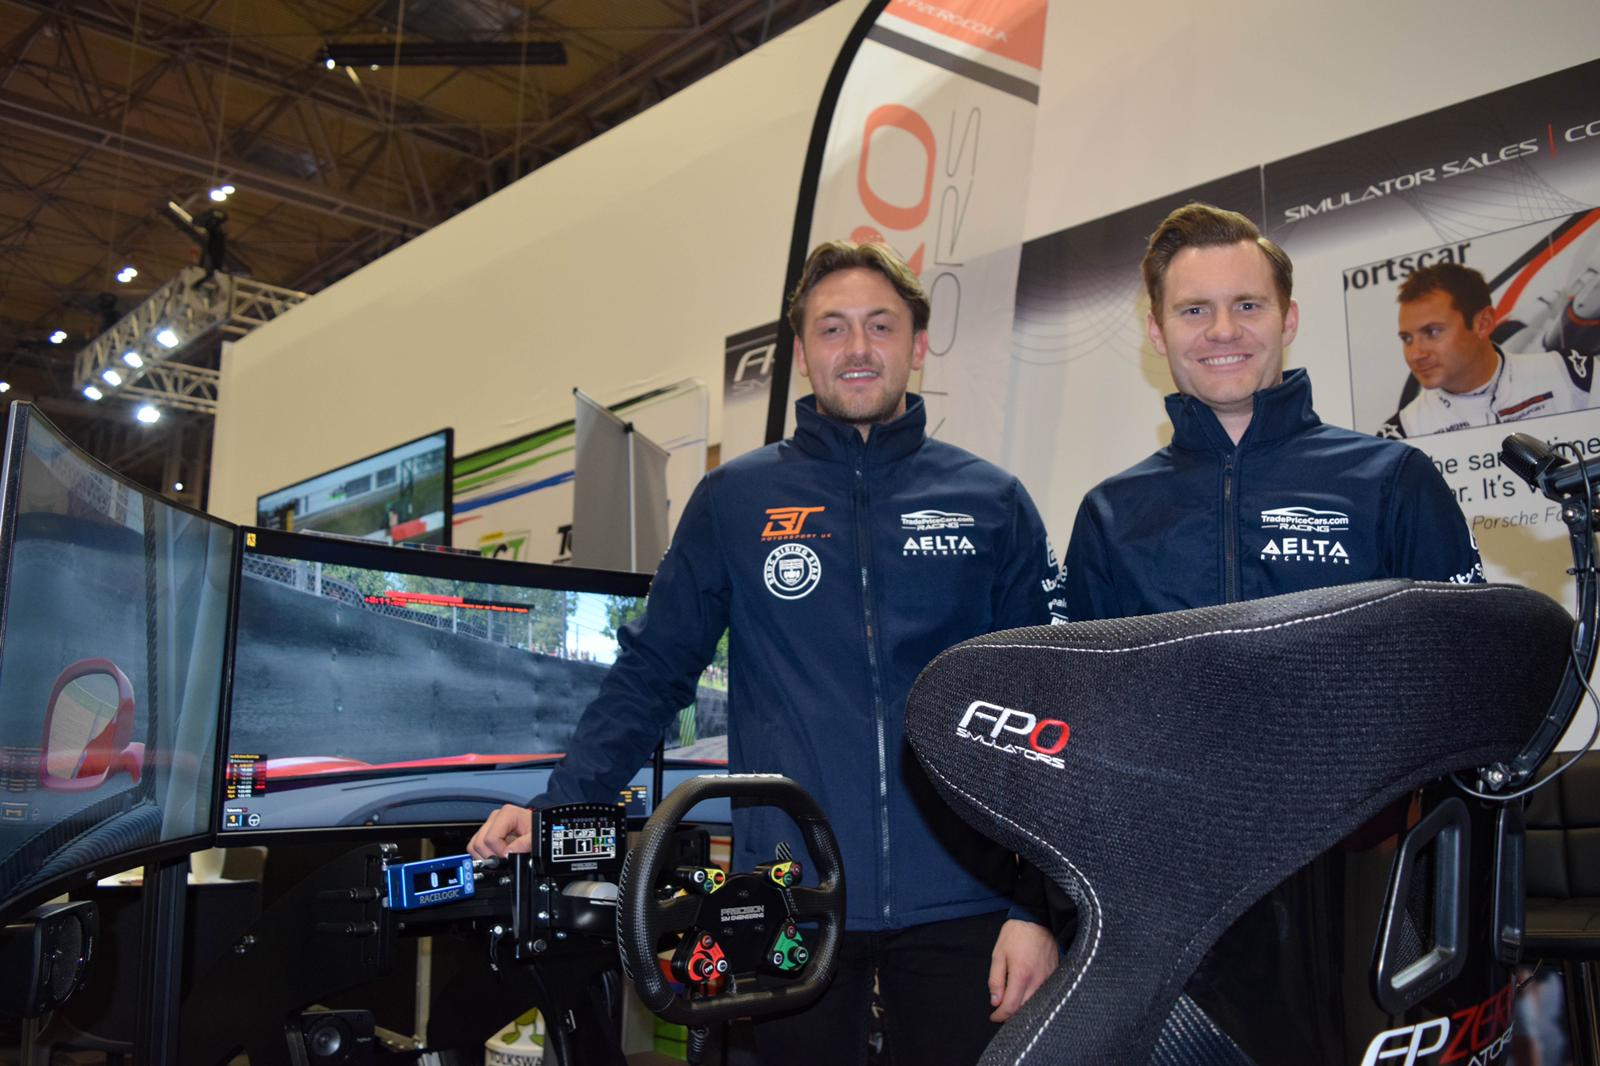 Trade Price Cars Racing welcome FPZERO onboard for 2020 BTCC season